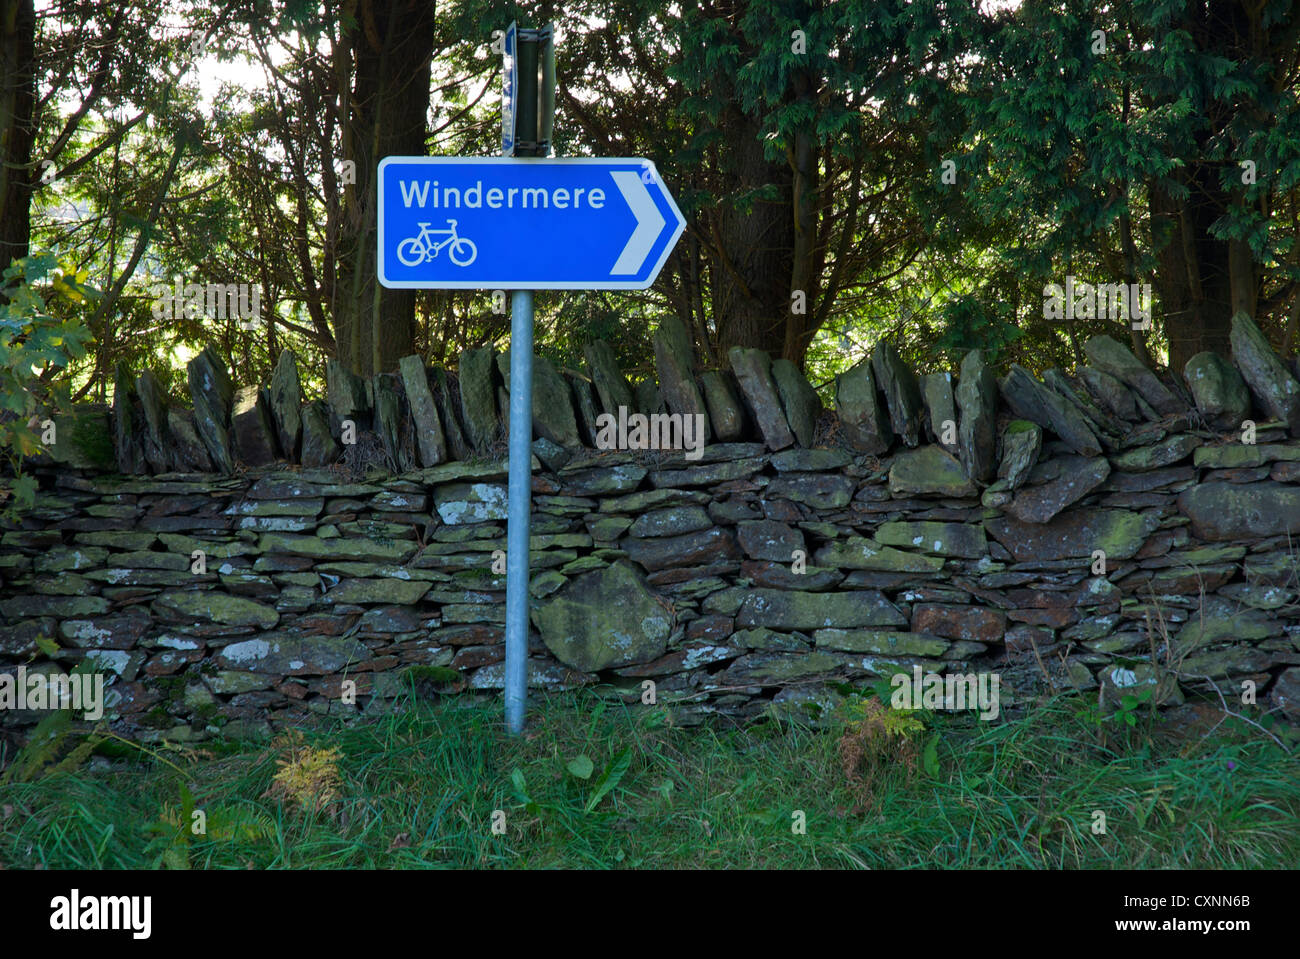 Sign for Cumbrian Cycleway, pointing in the direction of Windermere, Lake District National Park, Cumbria, England - Stock Image